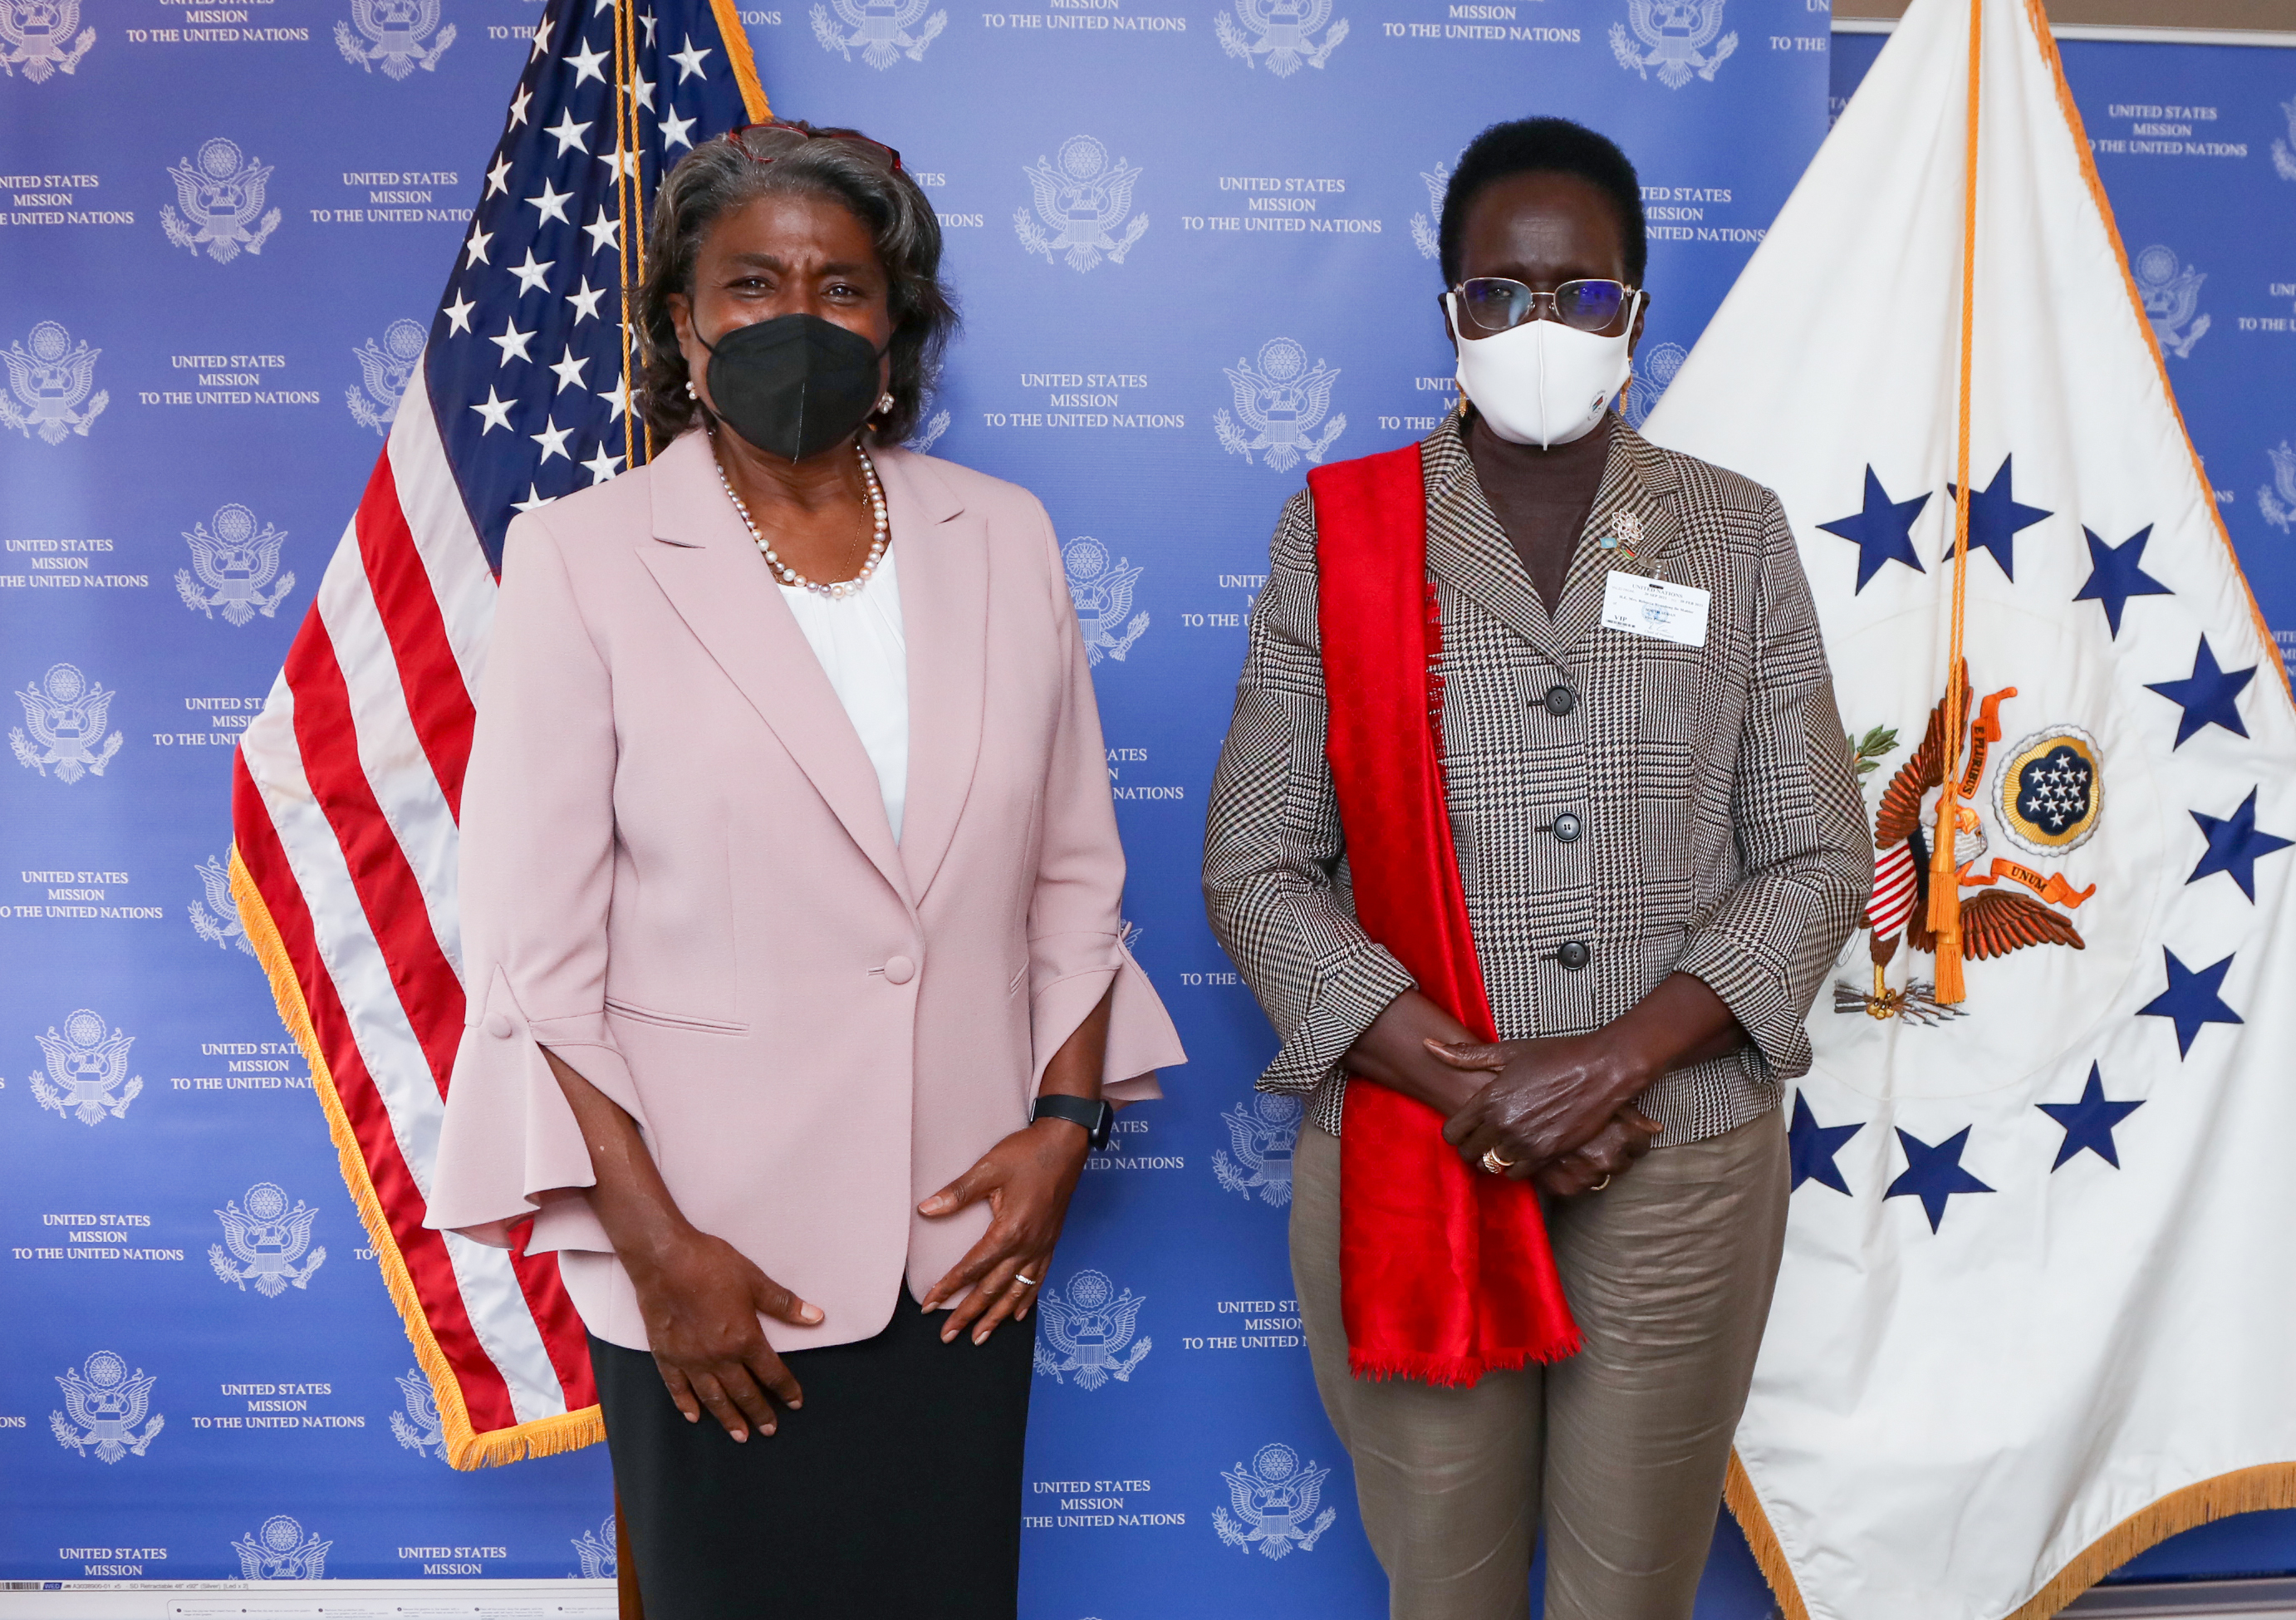 Protect aid workers – US tells South Sudan